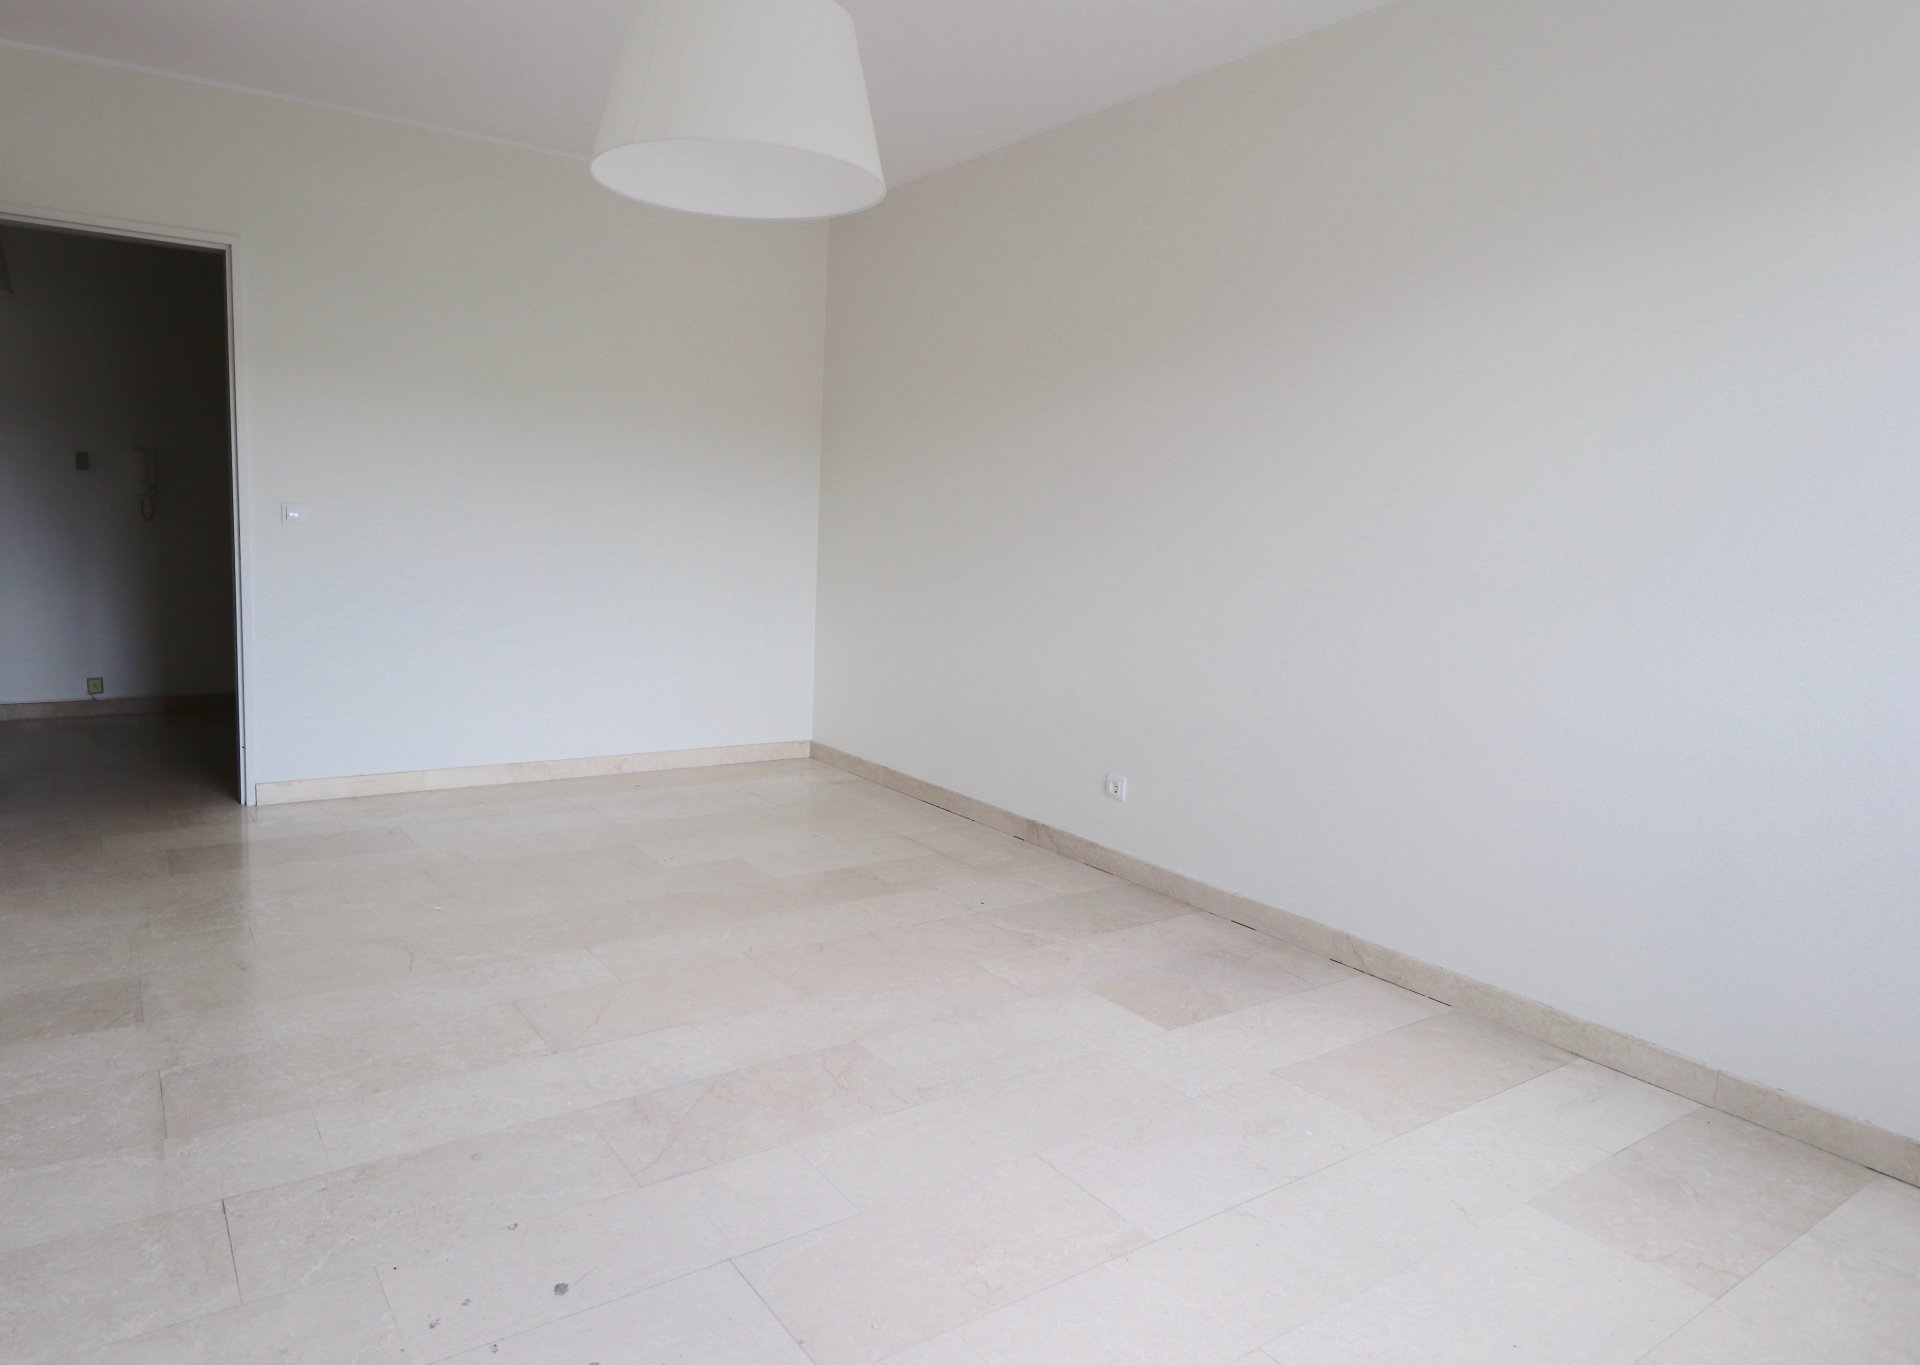 Location Appartement - Luxembourg Hollerich - Luxembourg